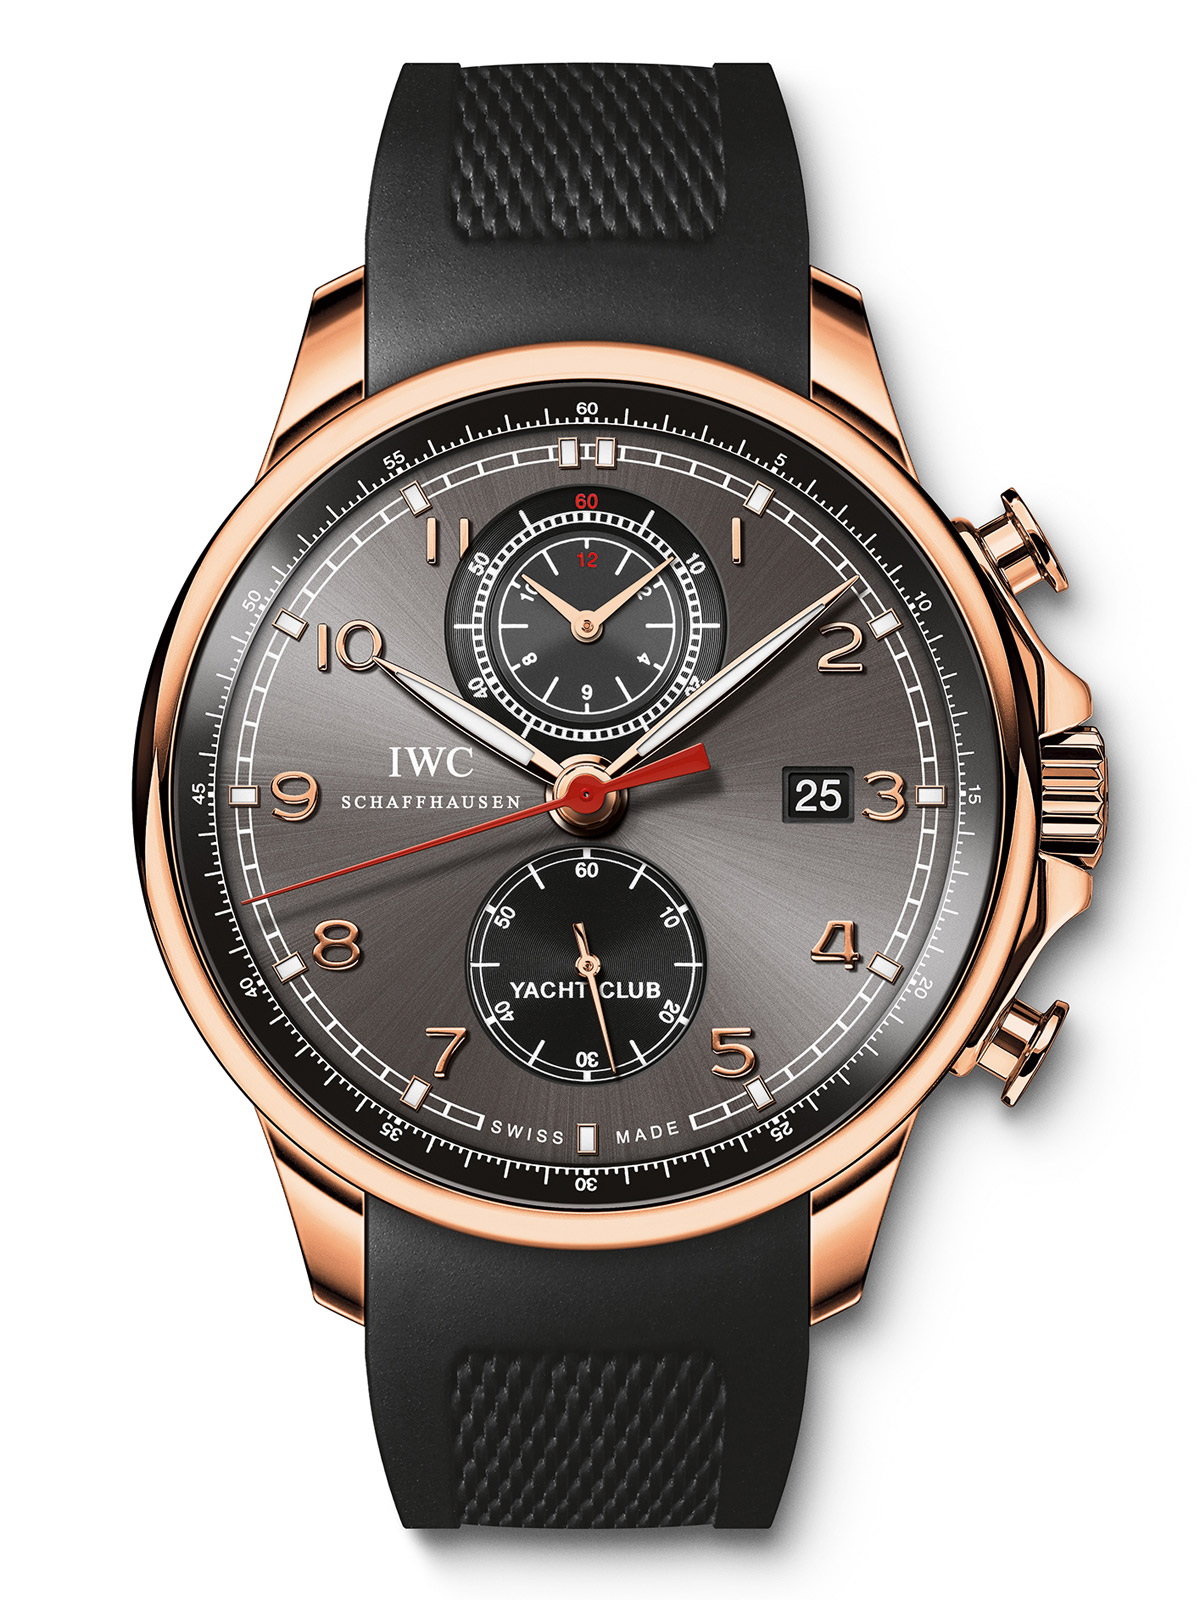 IWC Boutique Amsterdam Opens Its Doors At The Luxury Half